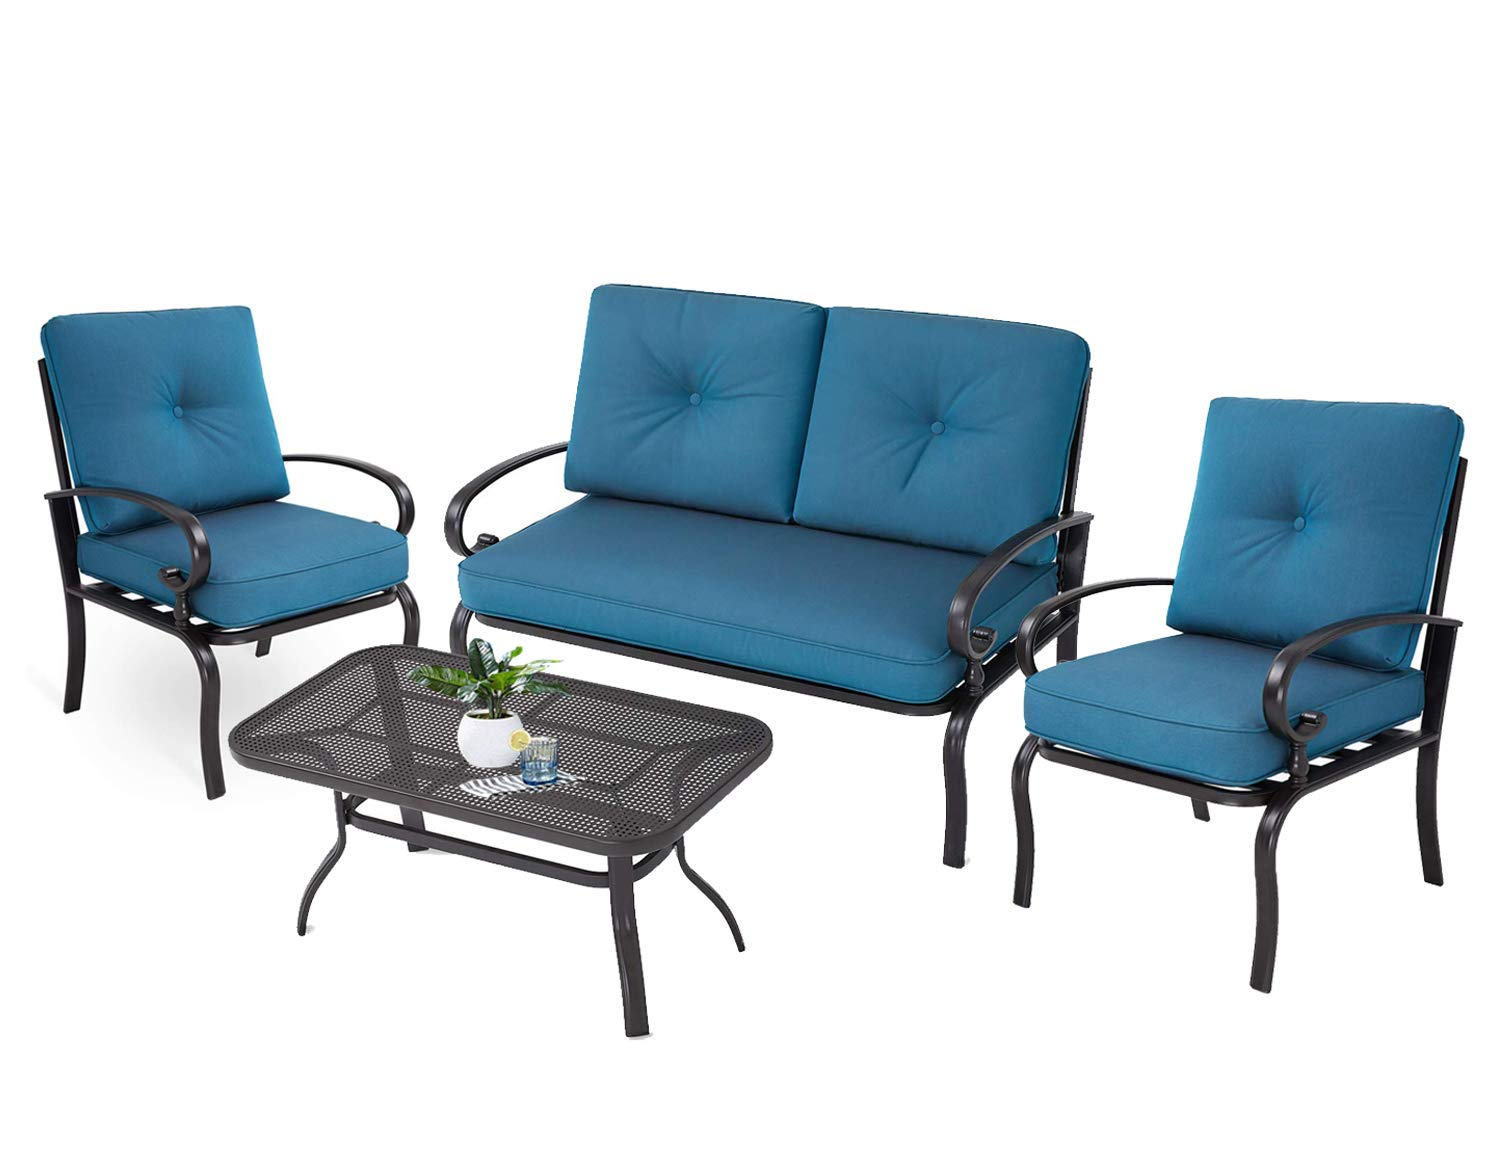 Incbruce Outdoor Patio Furniture Conversation Set Loveseat, 2 Chairs, Coffee Table with Cushion, Lawn Front Porch Garden, Wrought Iron Frame, Peacock Blue